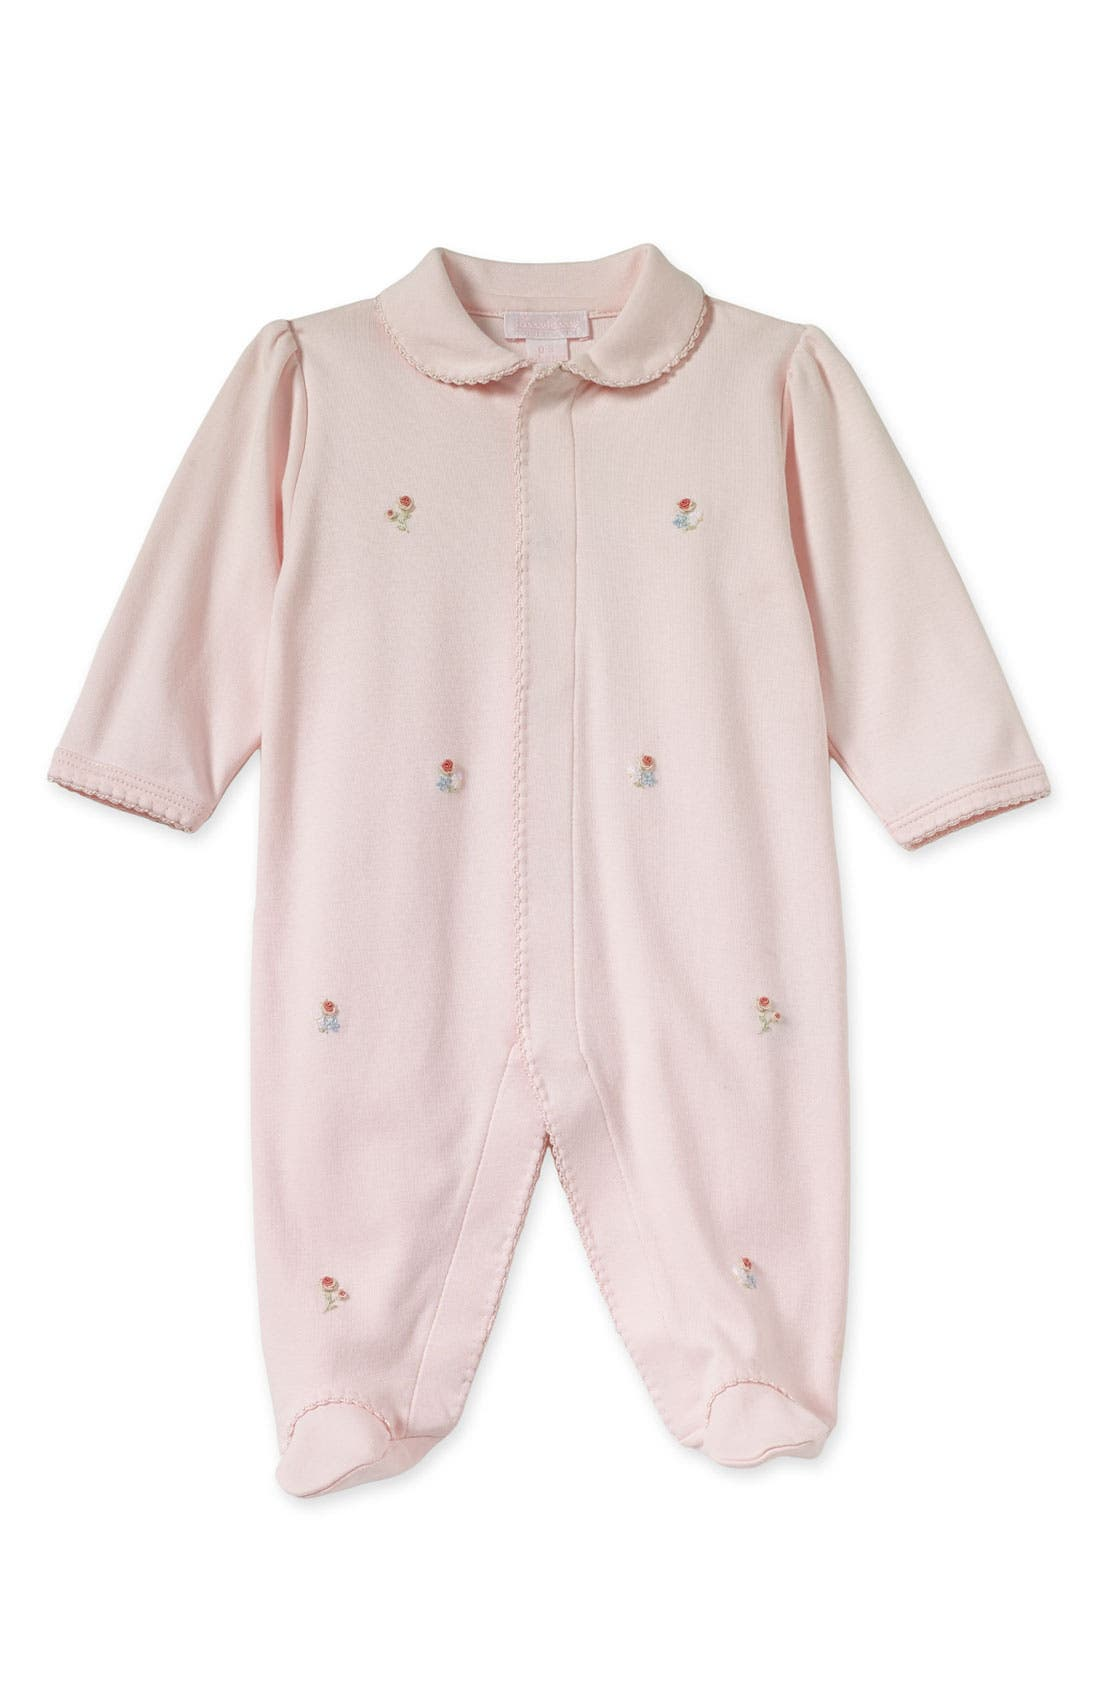 Alternate Image 1 Selected - Kissy Kissy Footed Coveralls (Infant)